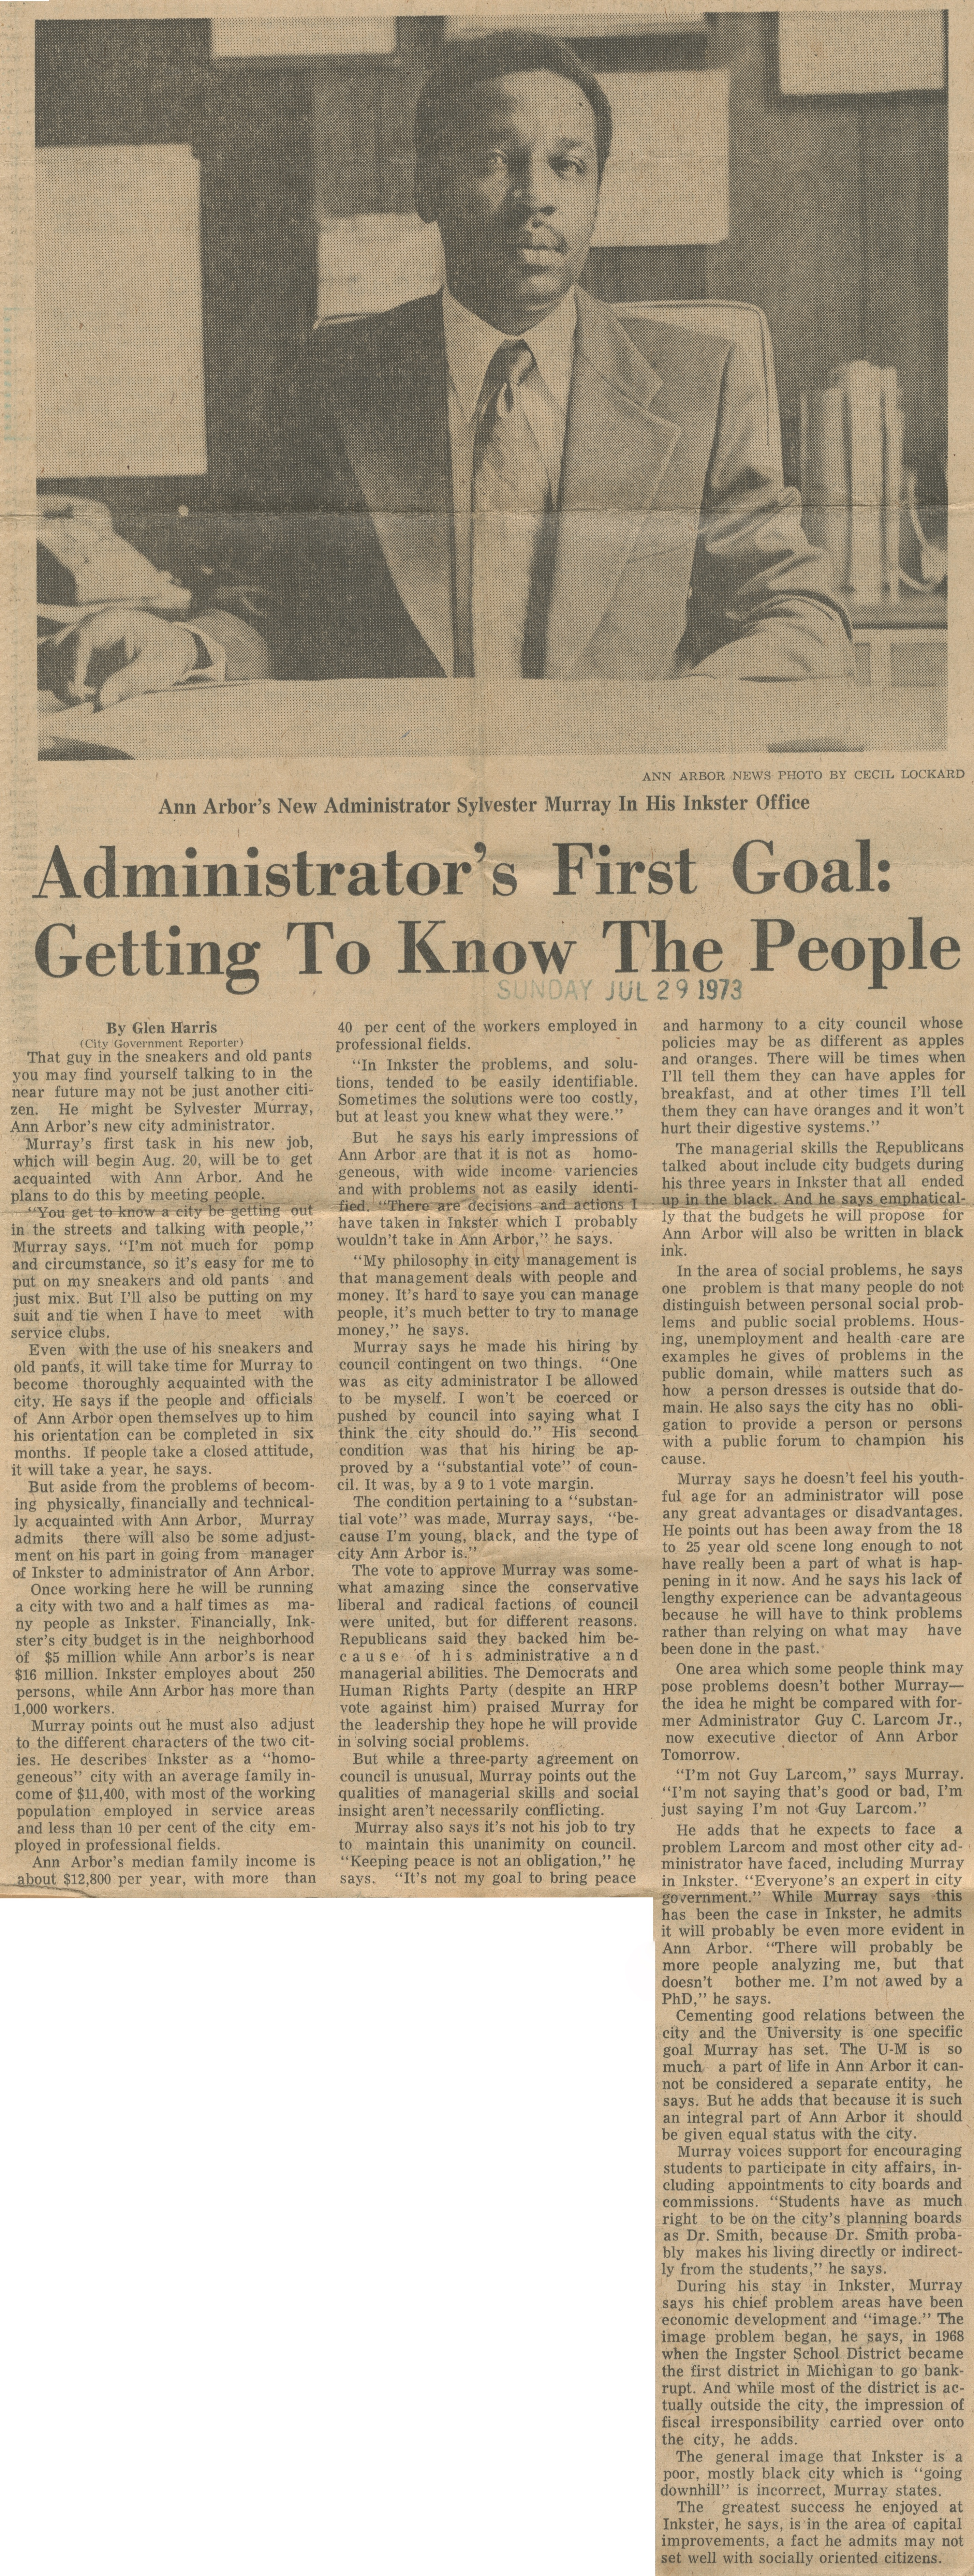 Administrator's First Goal: Getting To Know The People image